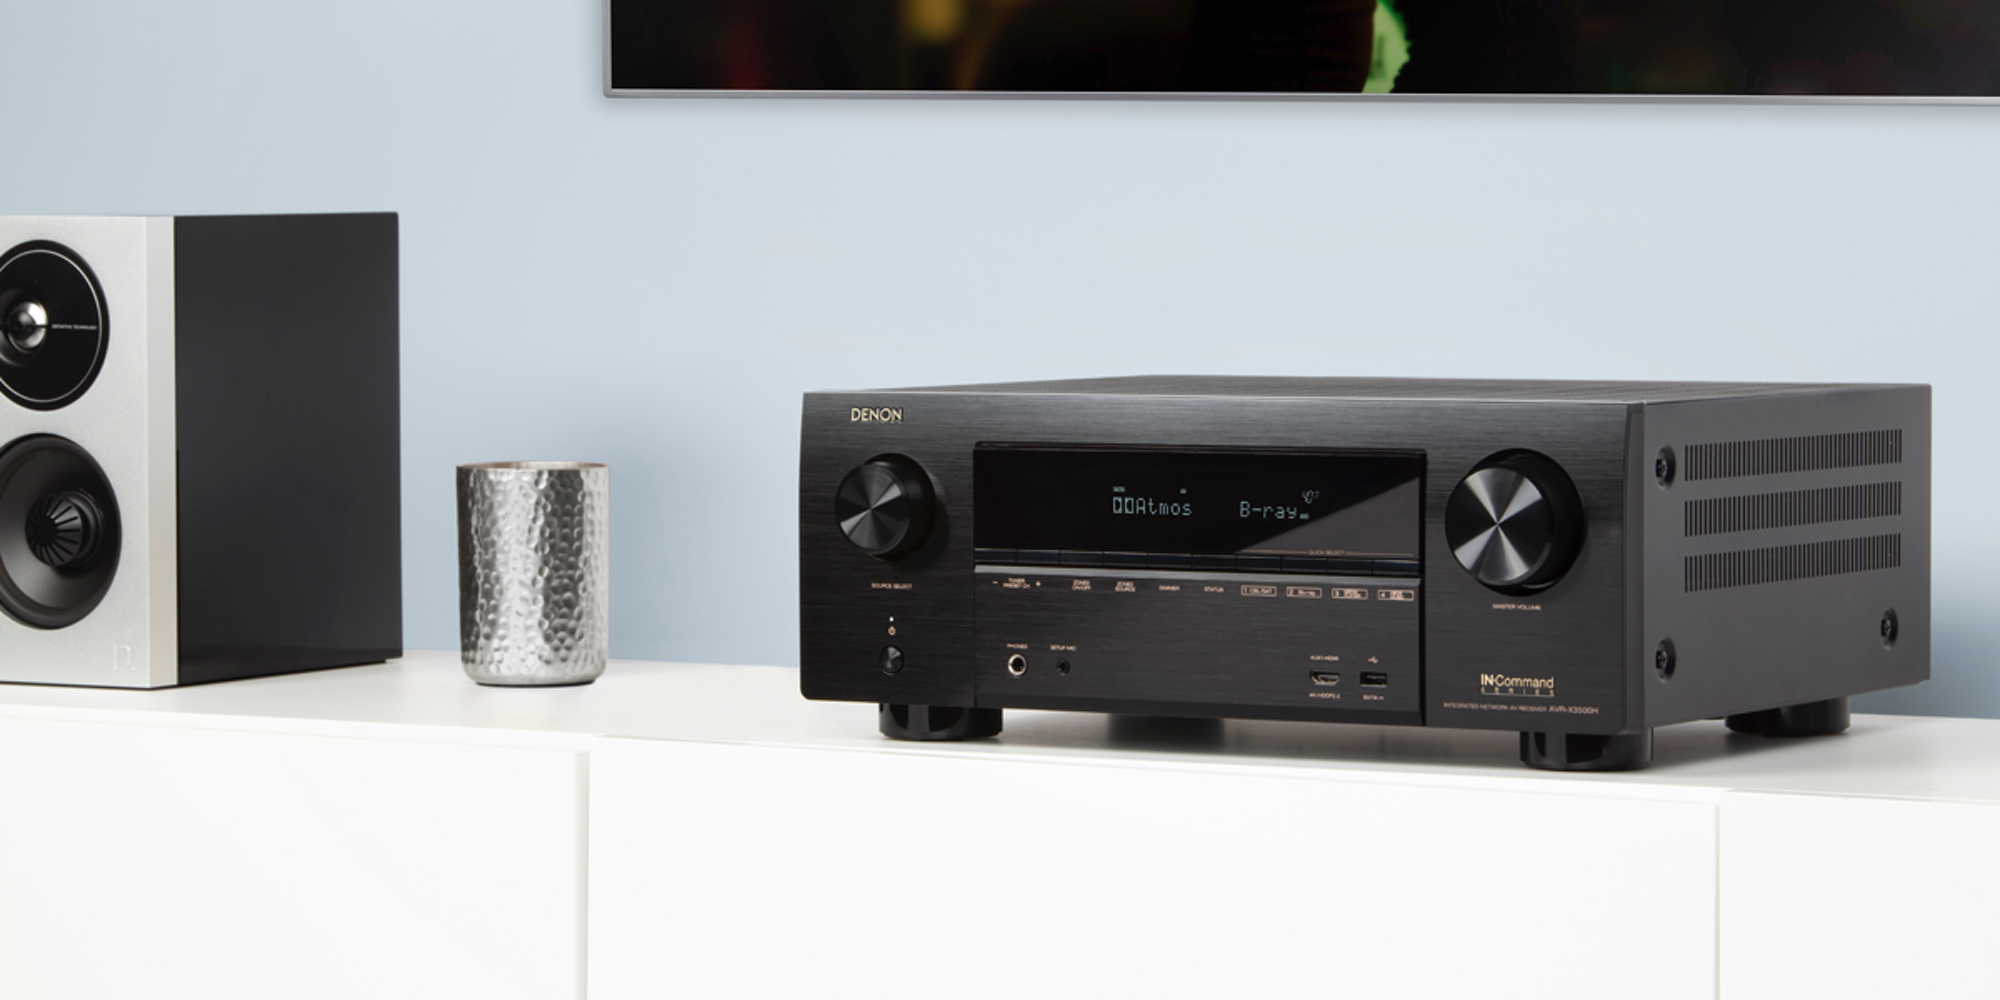 Add AirPlay 2 to your home theater with Denon's 7.2-Ch. Network A/V Receiver at $529 (Reg. $999)